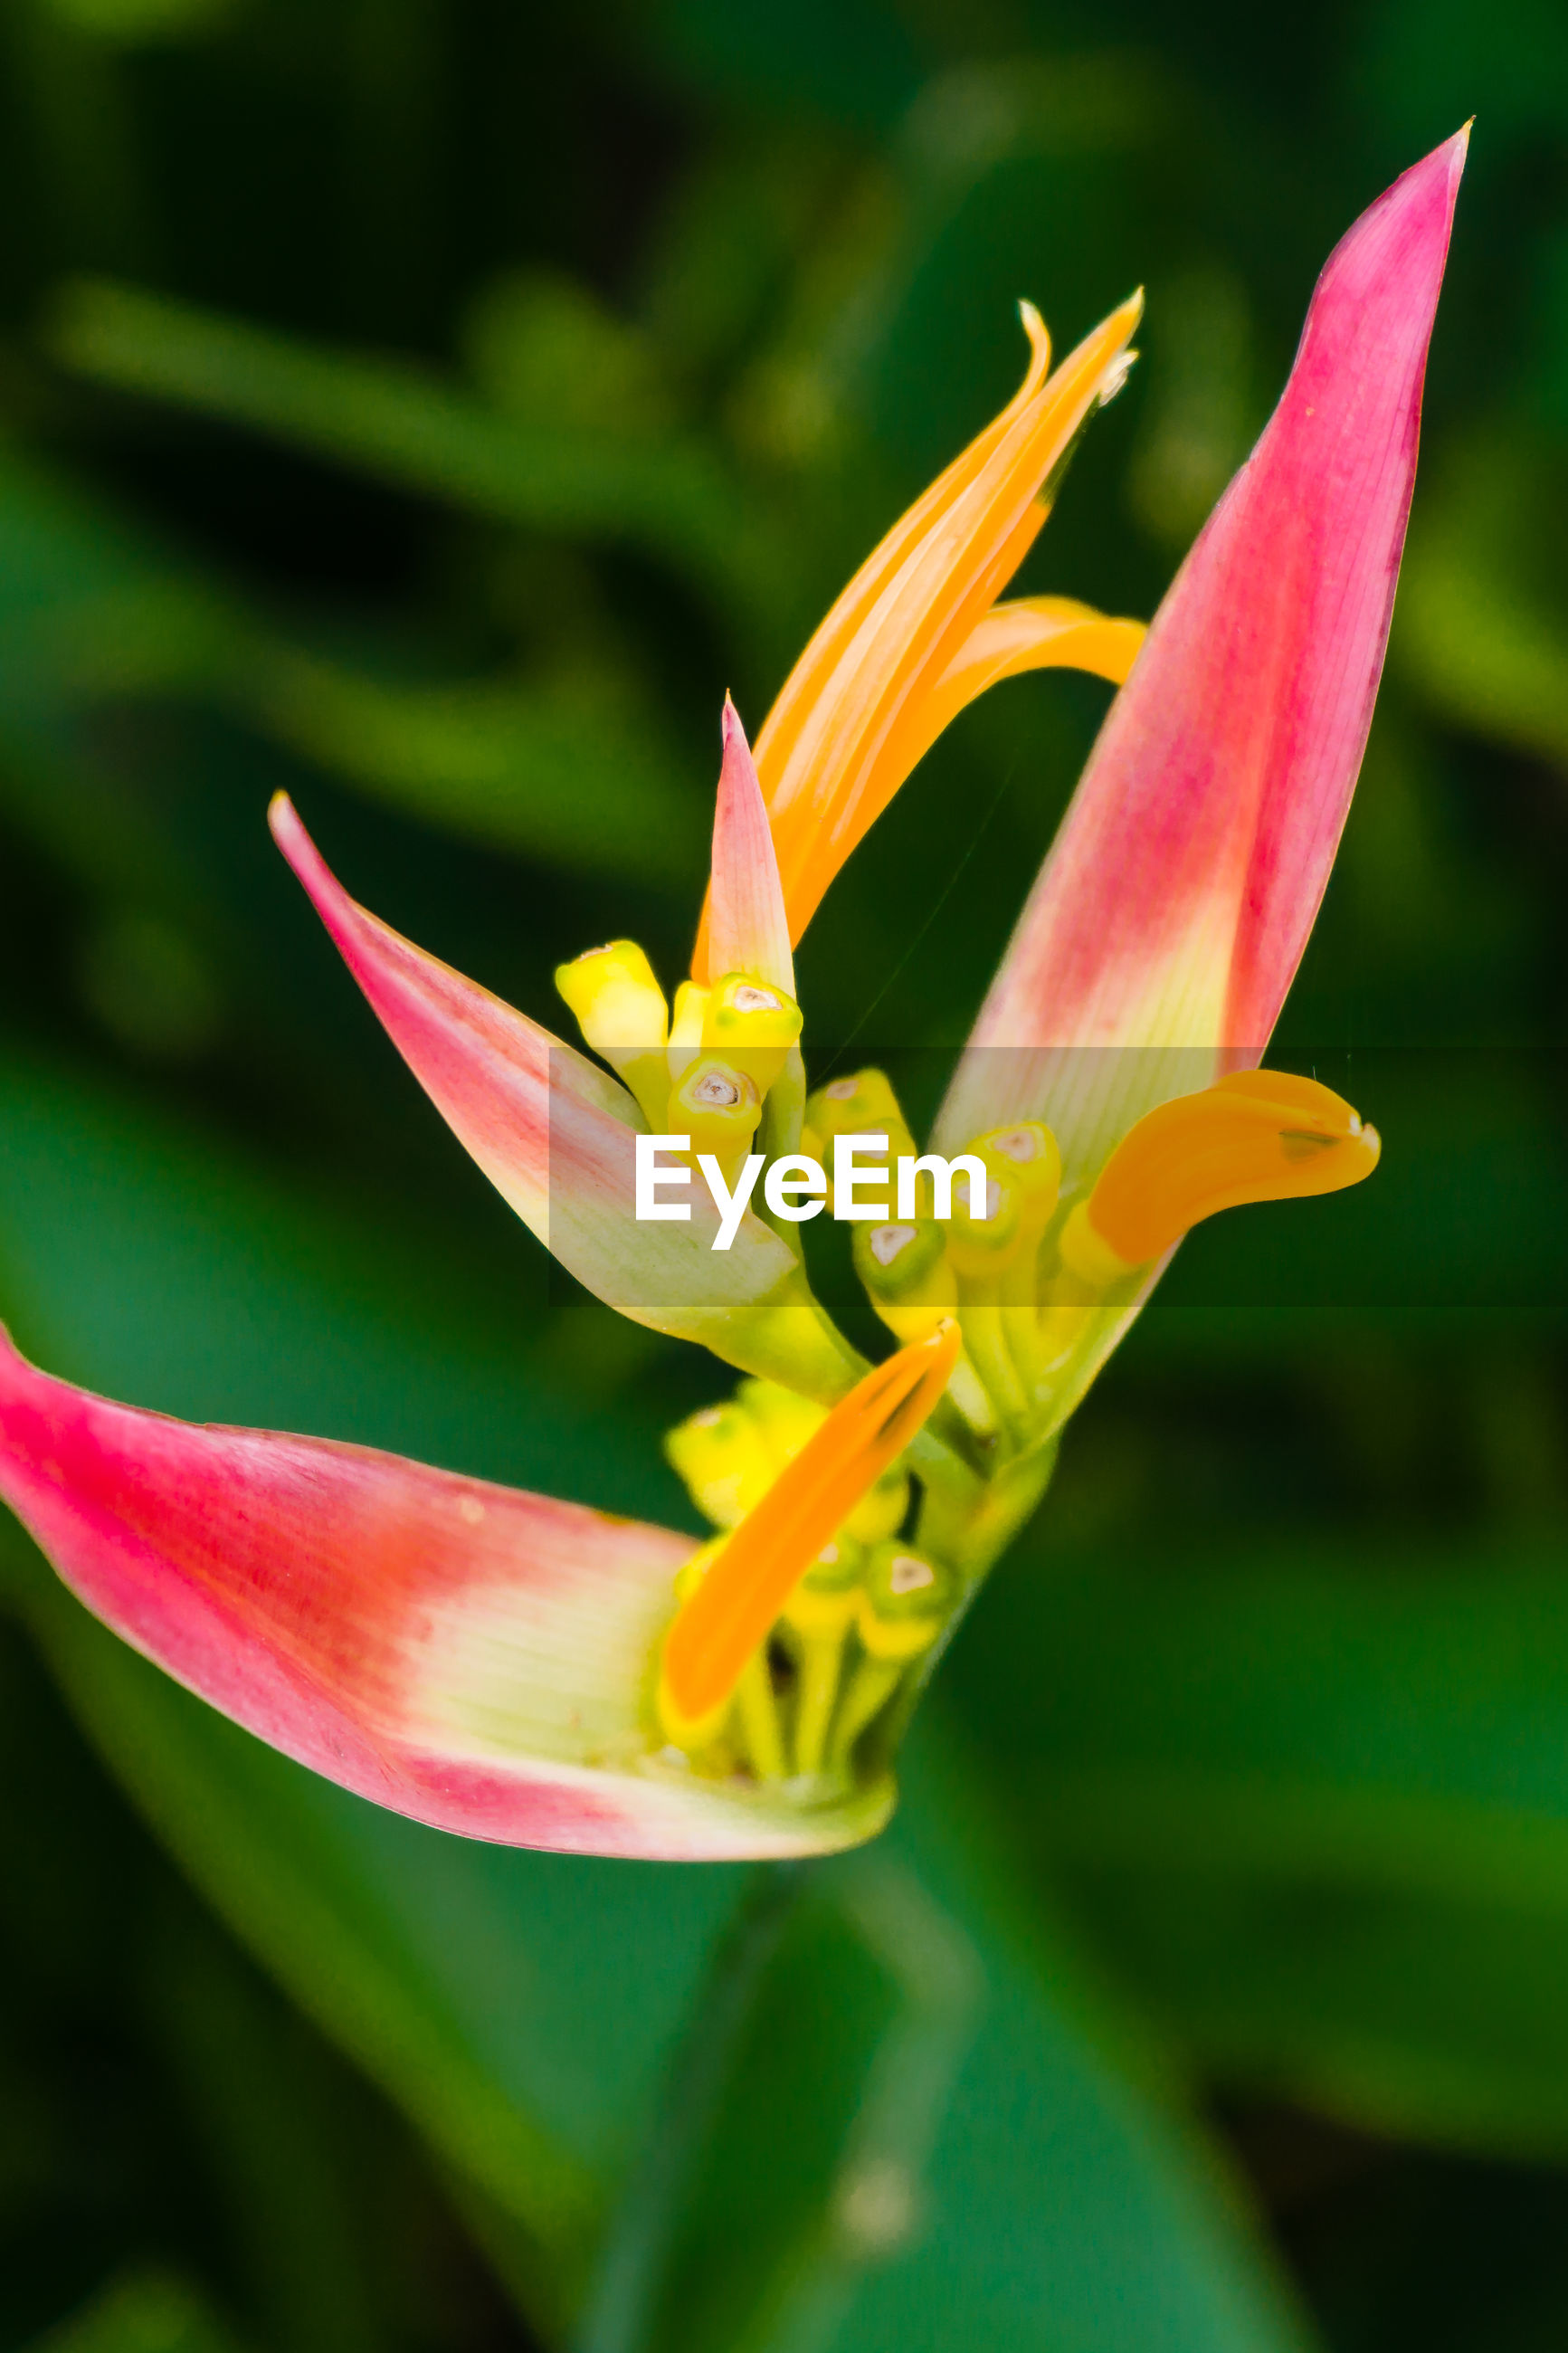 CLOSE-UP OF FRESH YELLOW LILY BLOOMING OUTDOORS